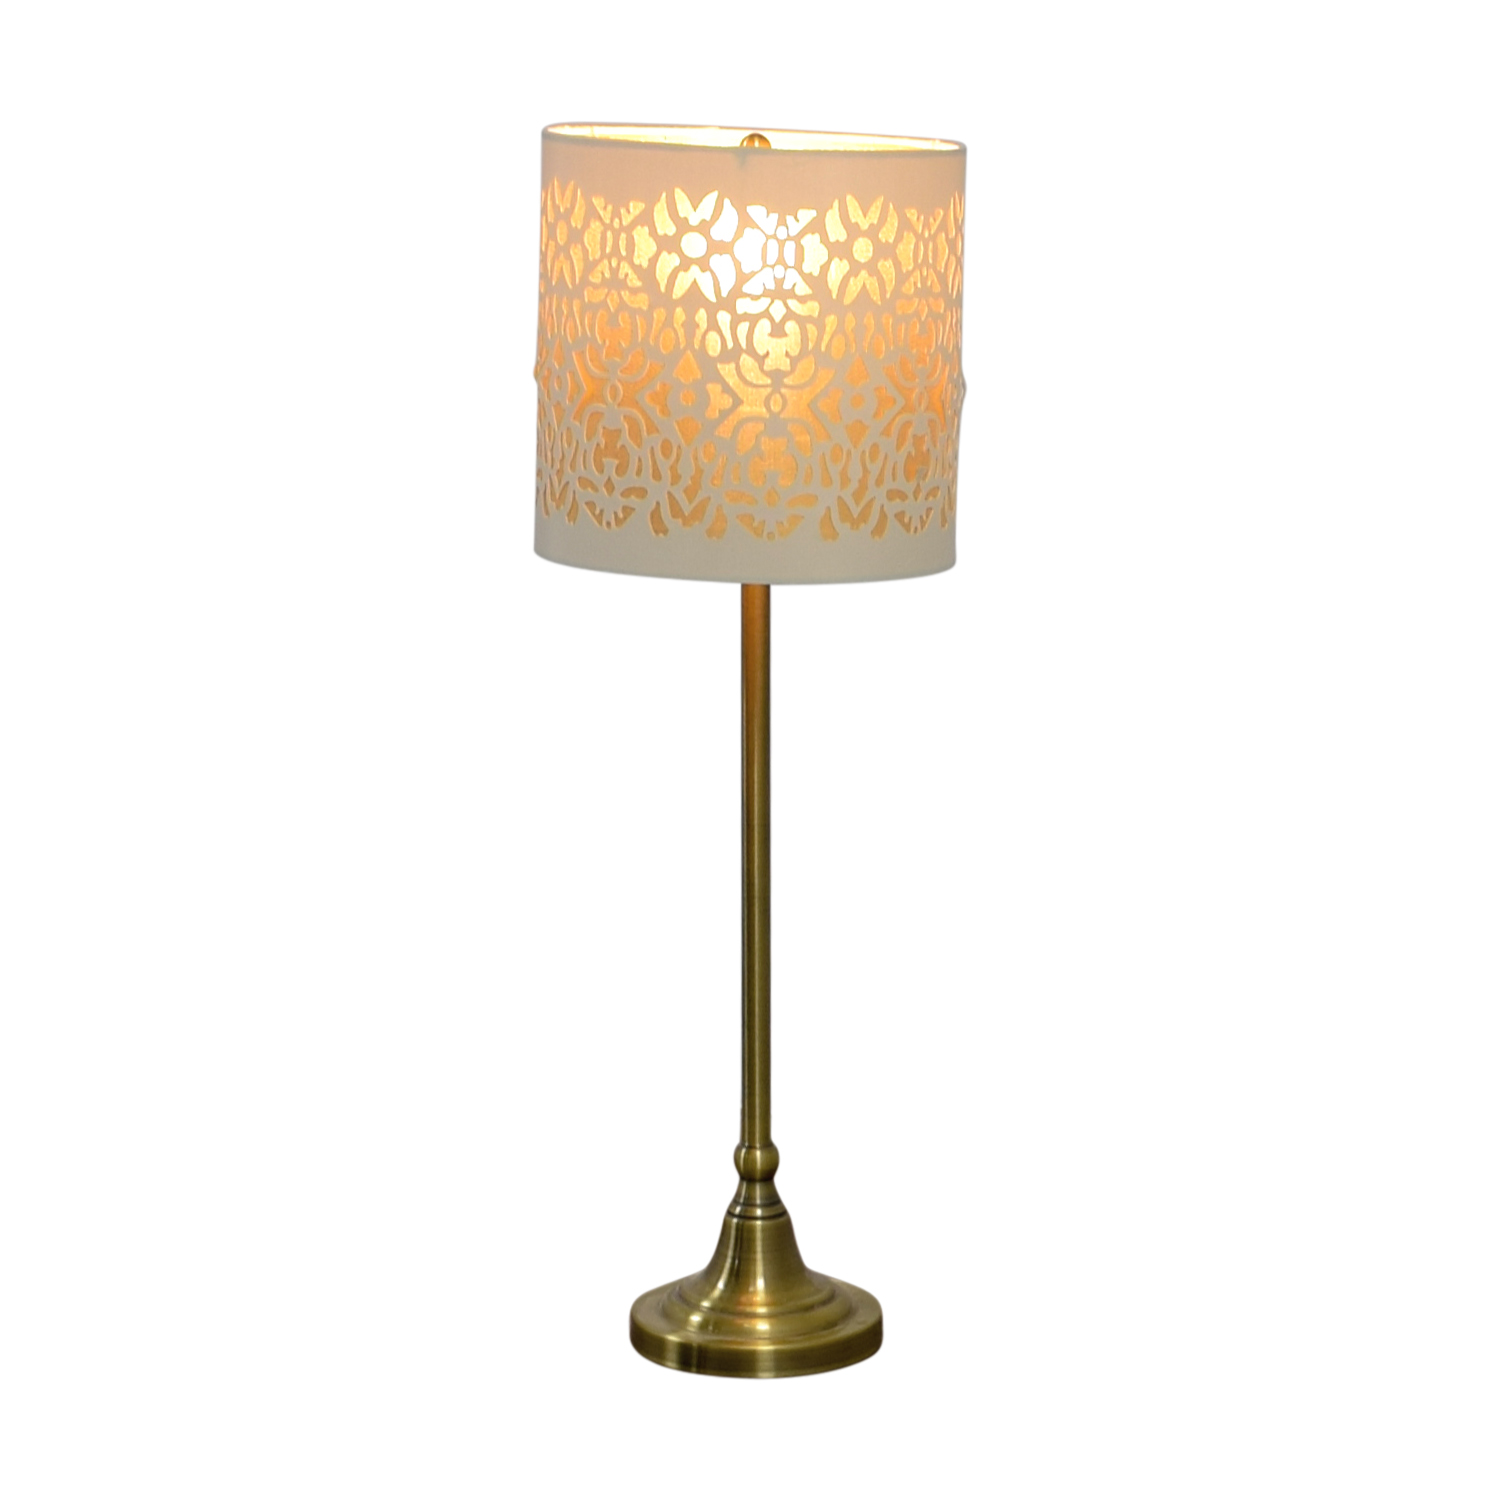 Cut Out White and Gold Table Lamp second hand